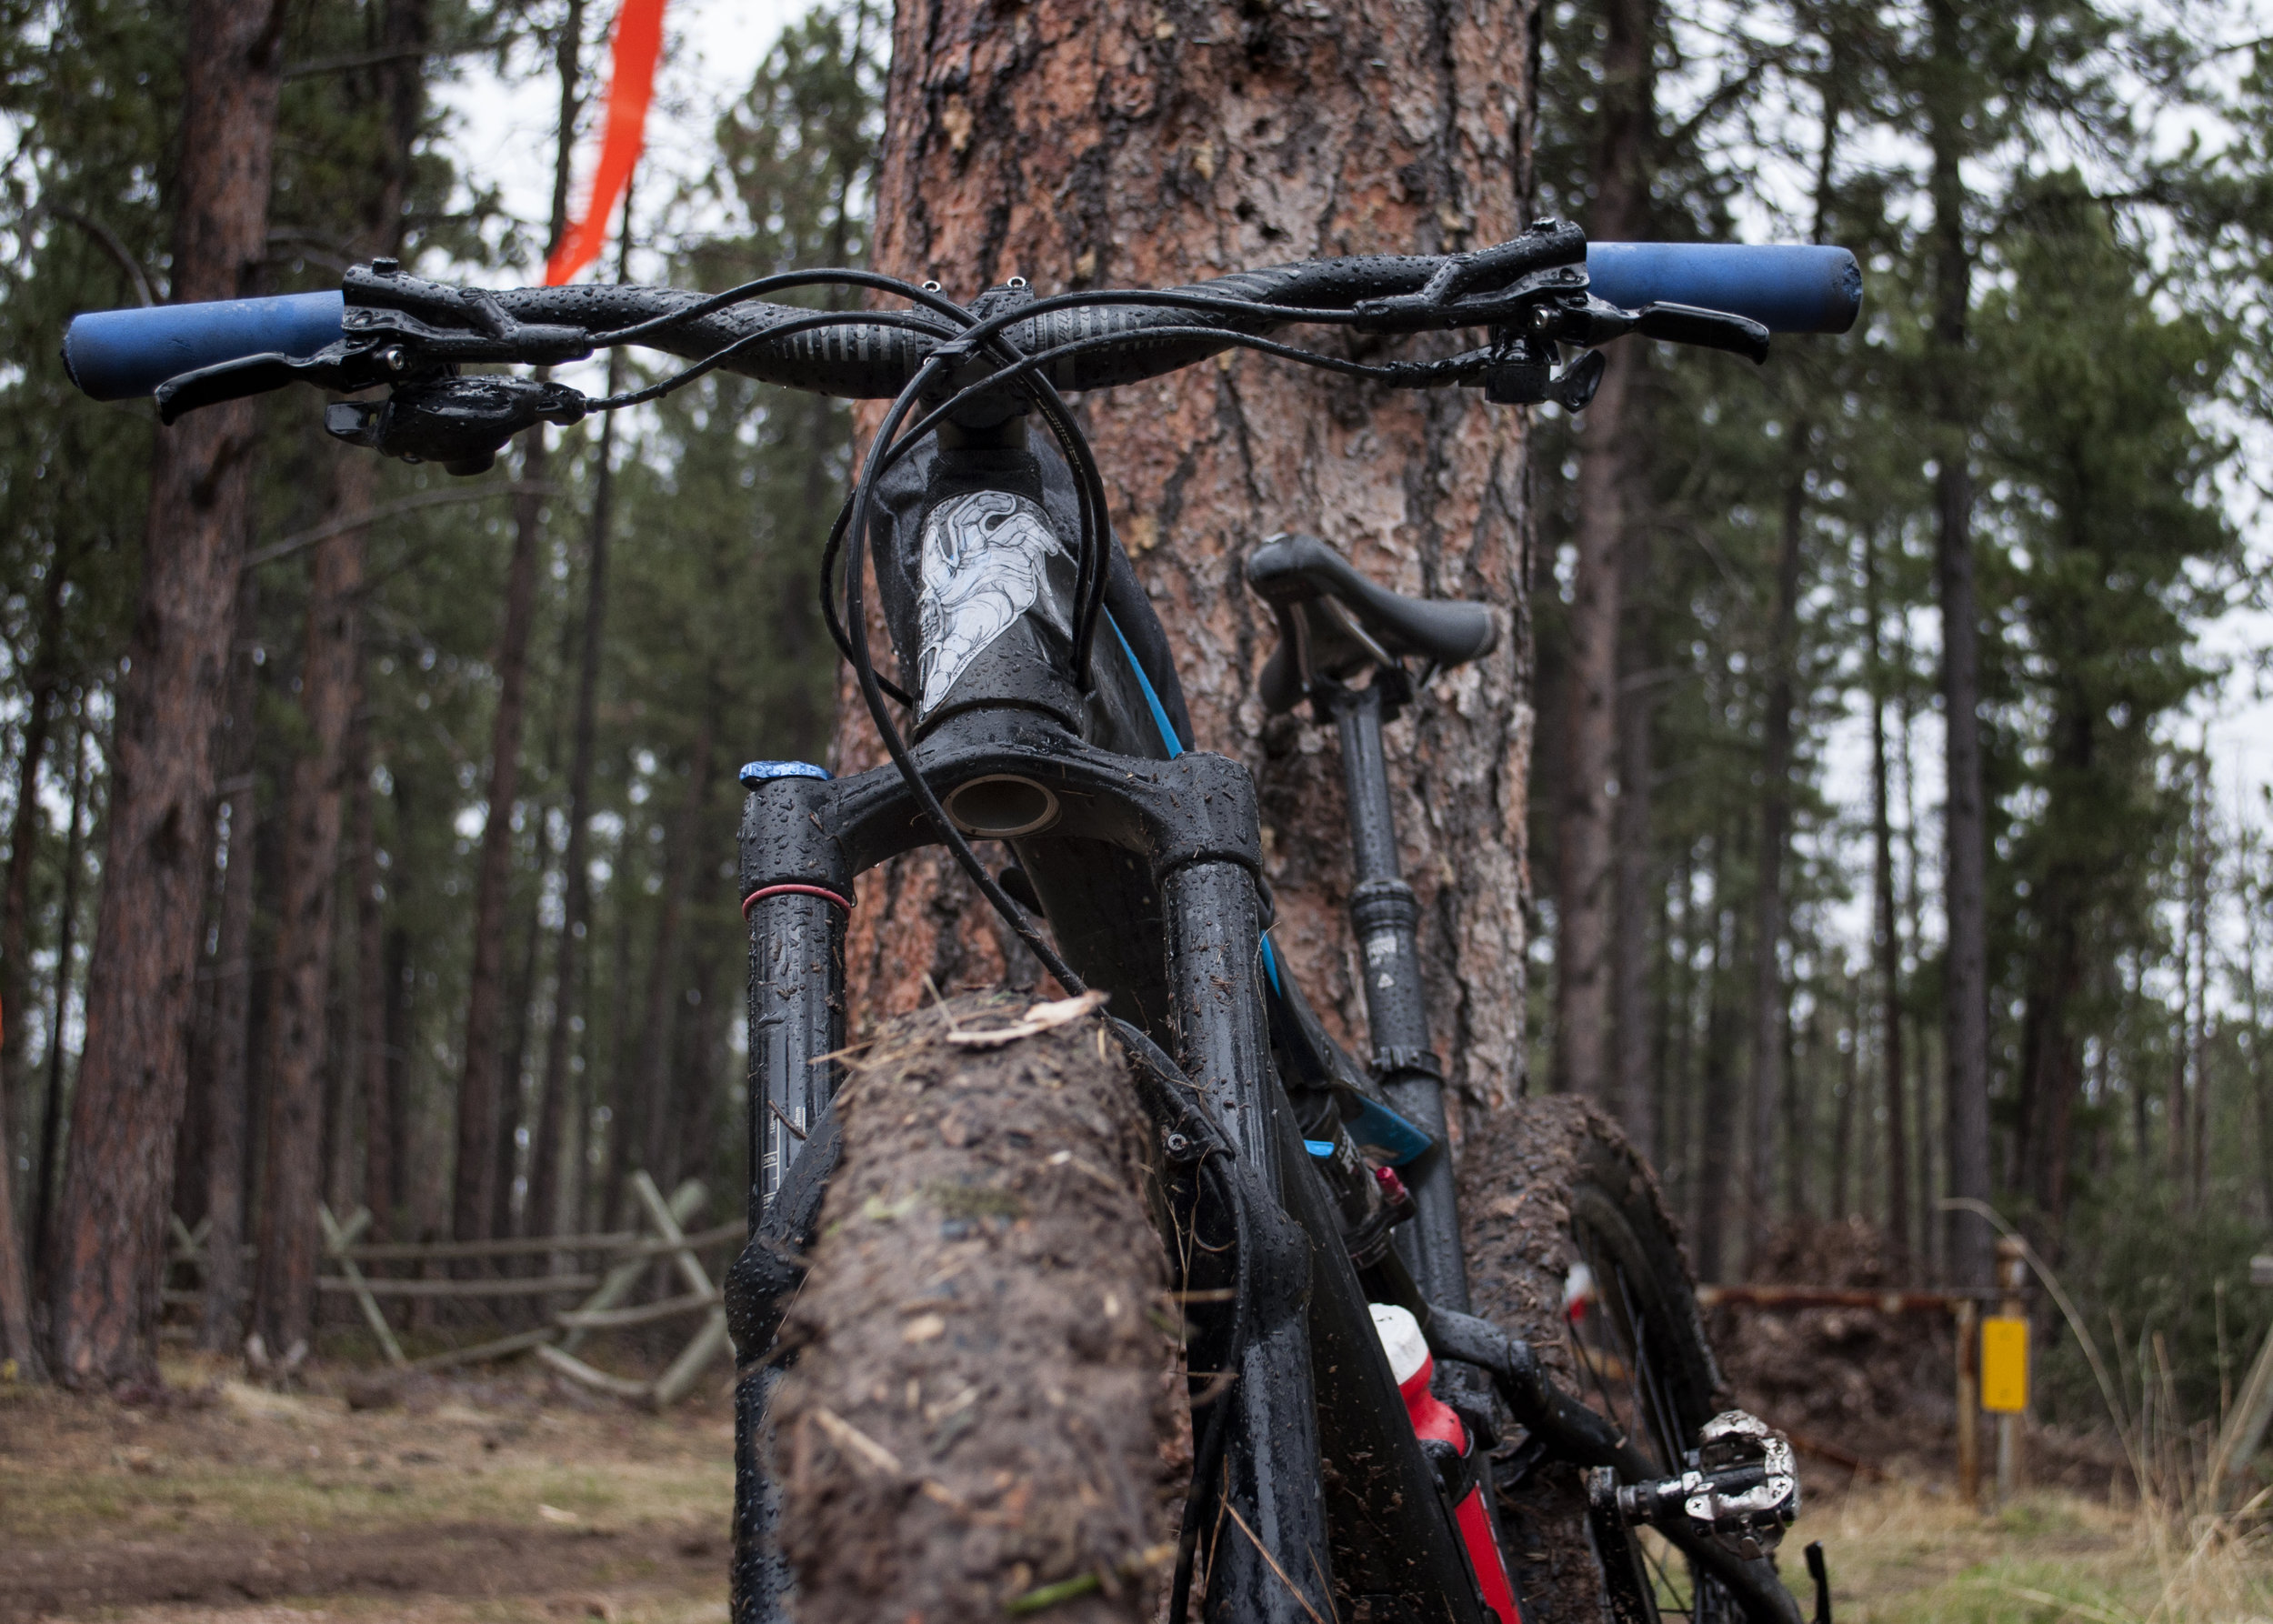 2017 Specialized Camber - I call her Muffy. The Camber, now discontinued, was designed to be the XC sister to the StumpJumper. With a less aggressive head angle and slack, she's a real climber. She's poppy, too, and agile. While she can get beat down on gnarly terrain, she shines on her rolly, flowy home turf.